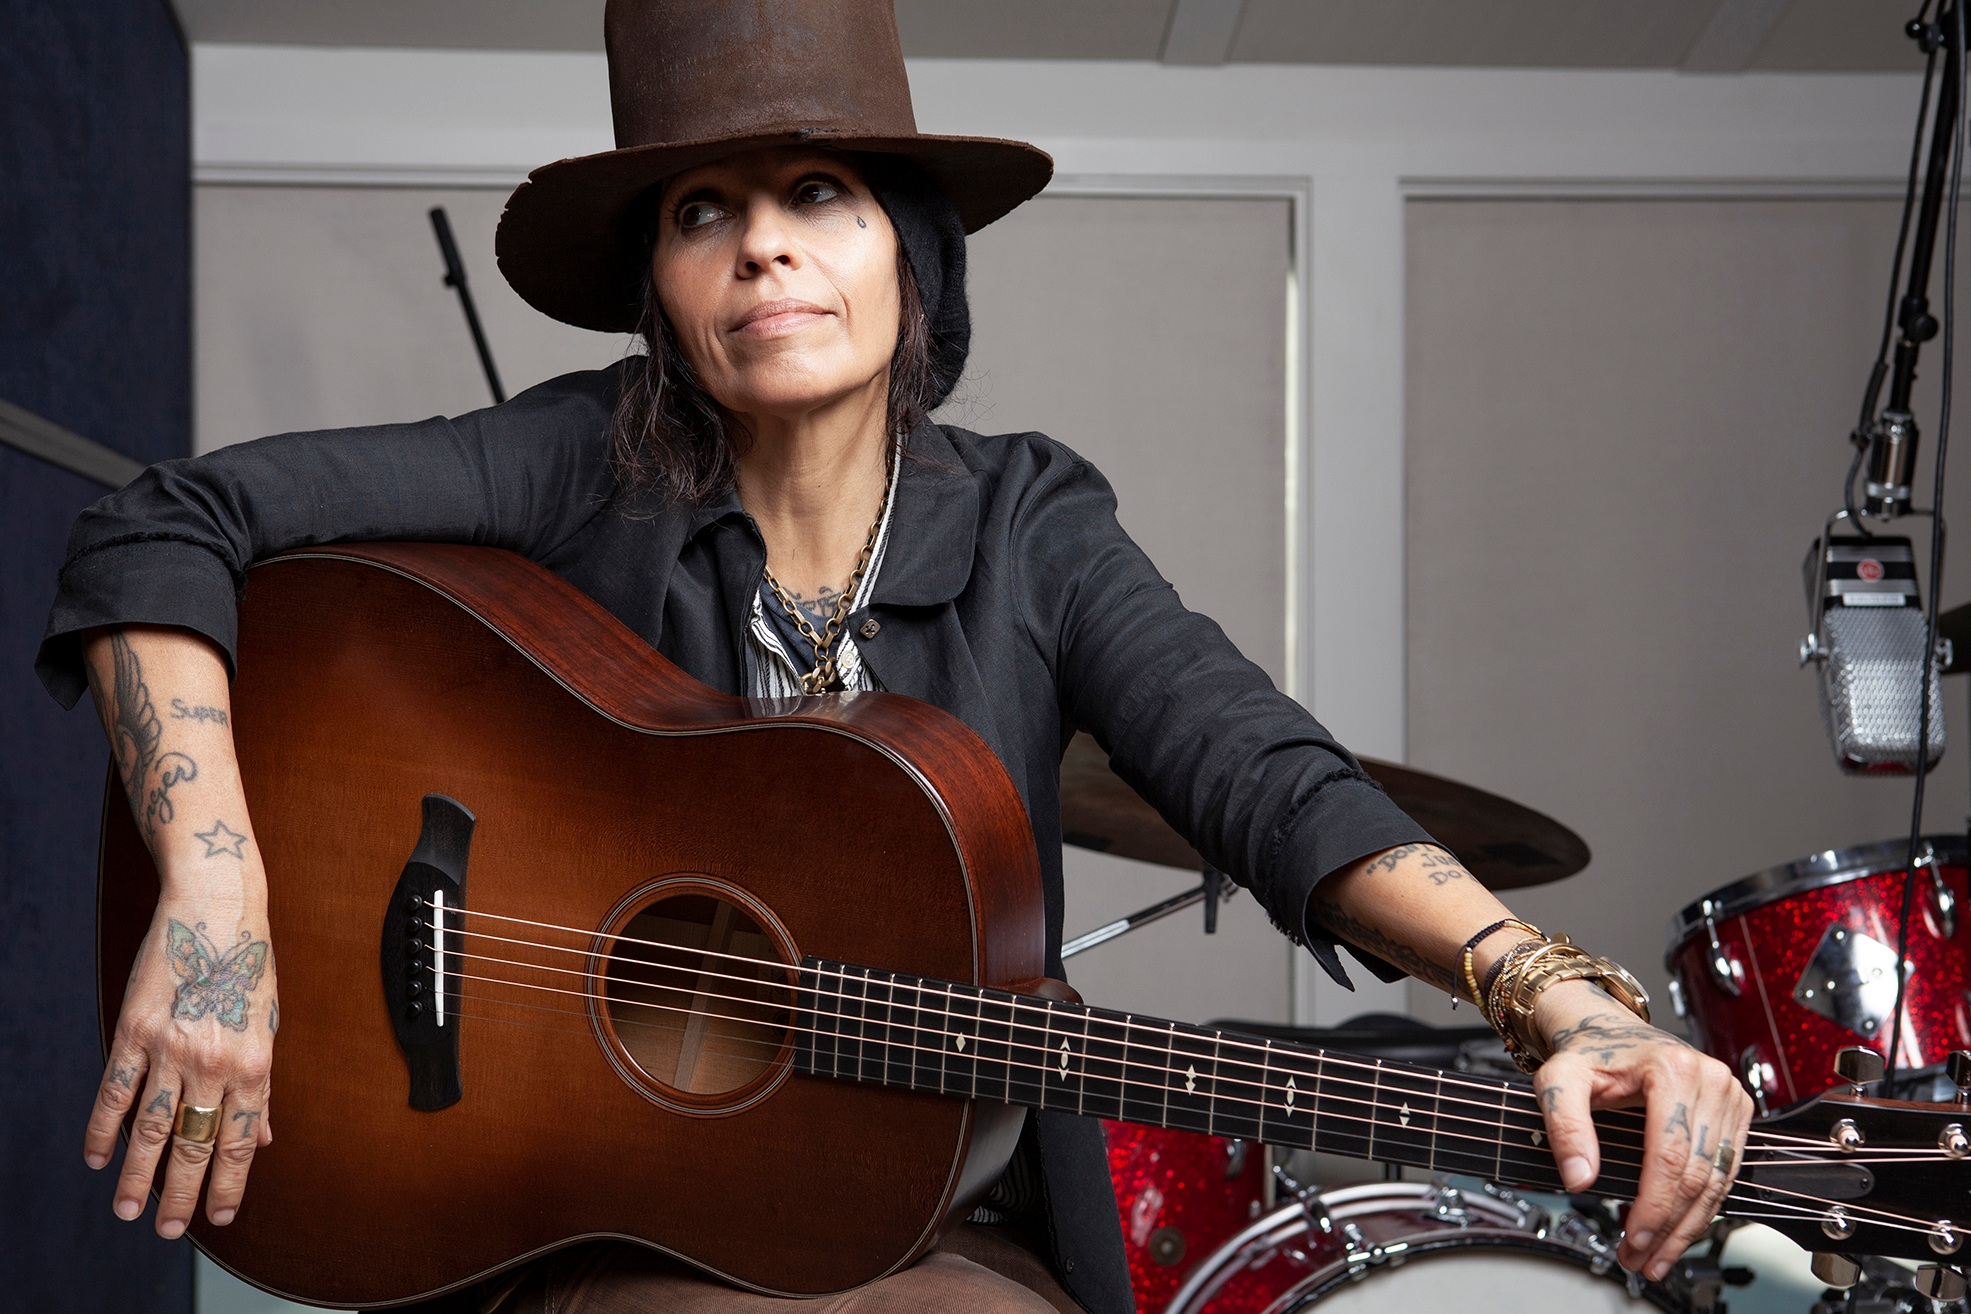 Entertainment - Linda Perry headlines joined by rising star Willa Amai, indie sensation Girlpool, and KCRW DJ Valida.